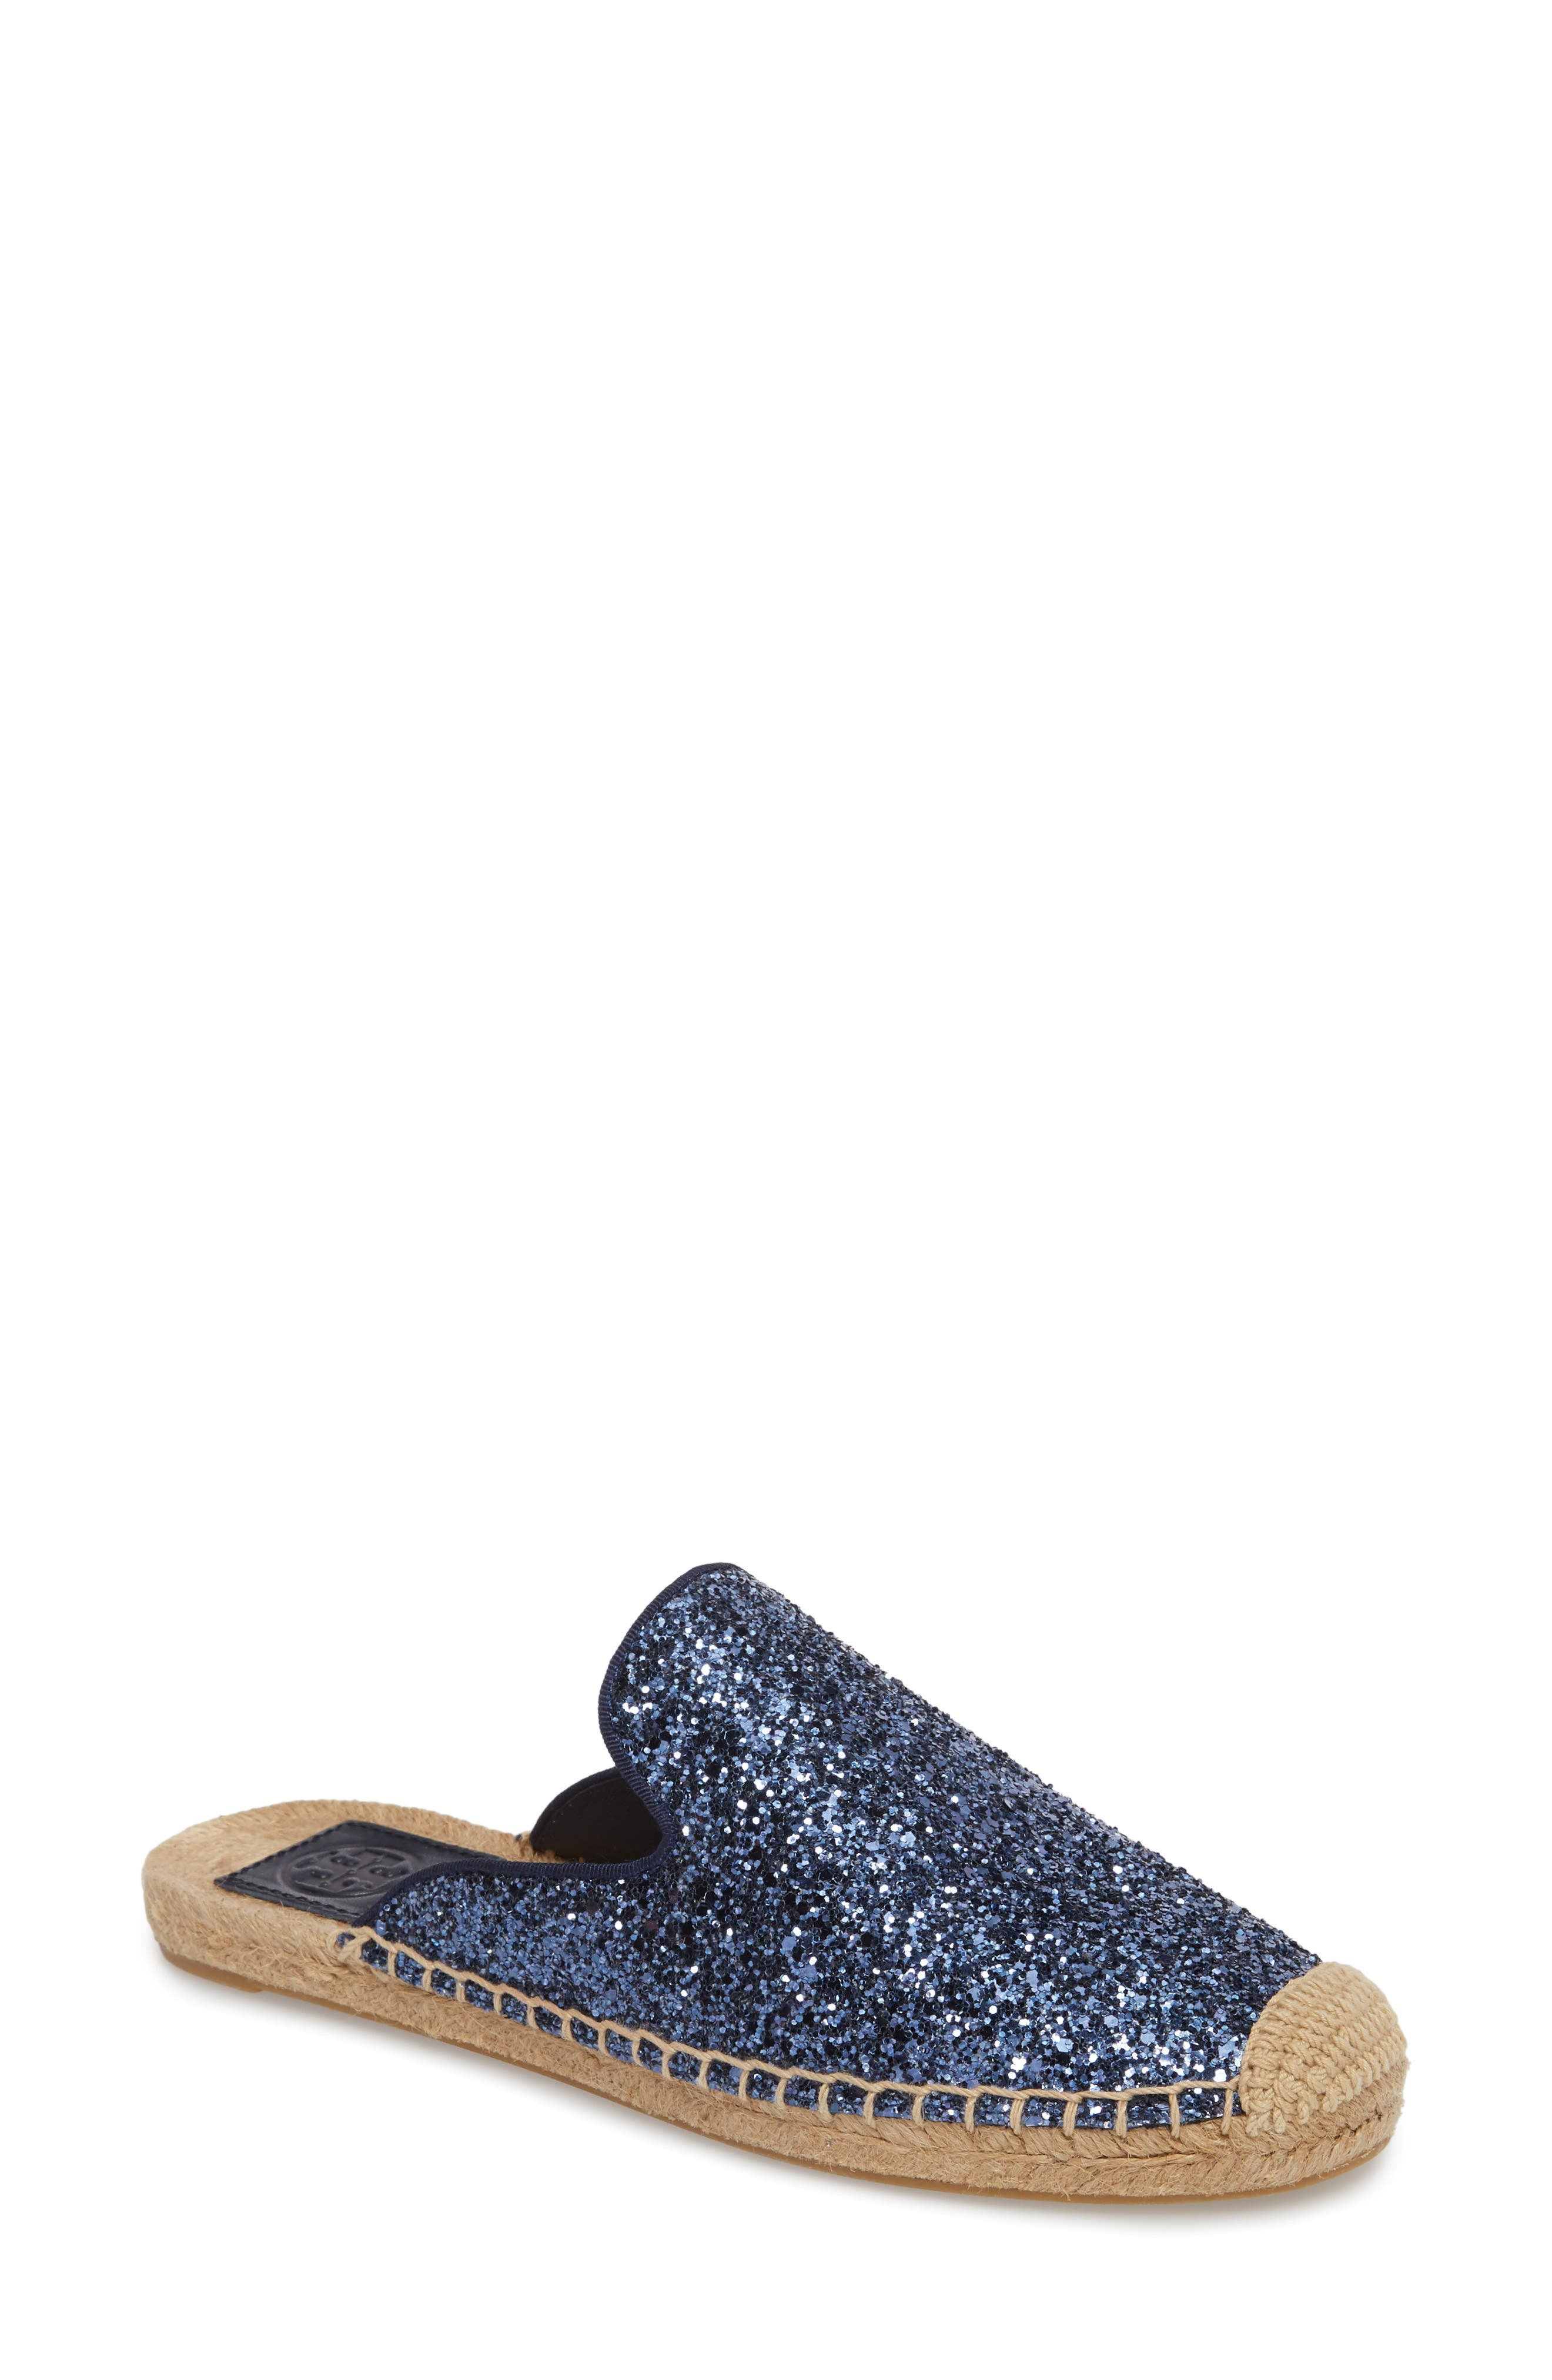 Max Glitter Espadrille Mule,                         Main,                         color, Perfect Navy